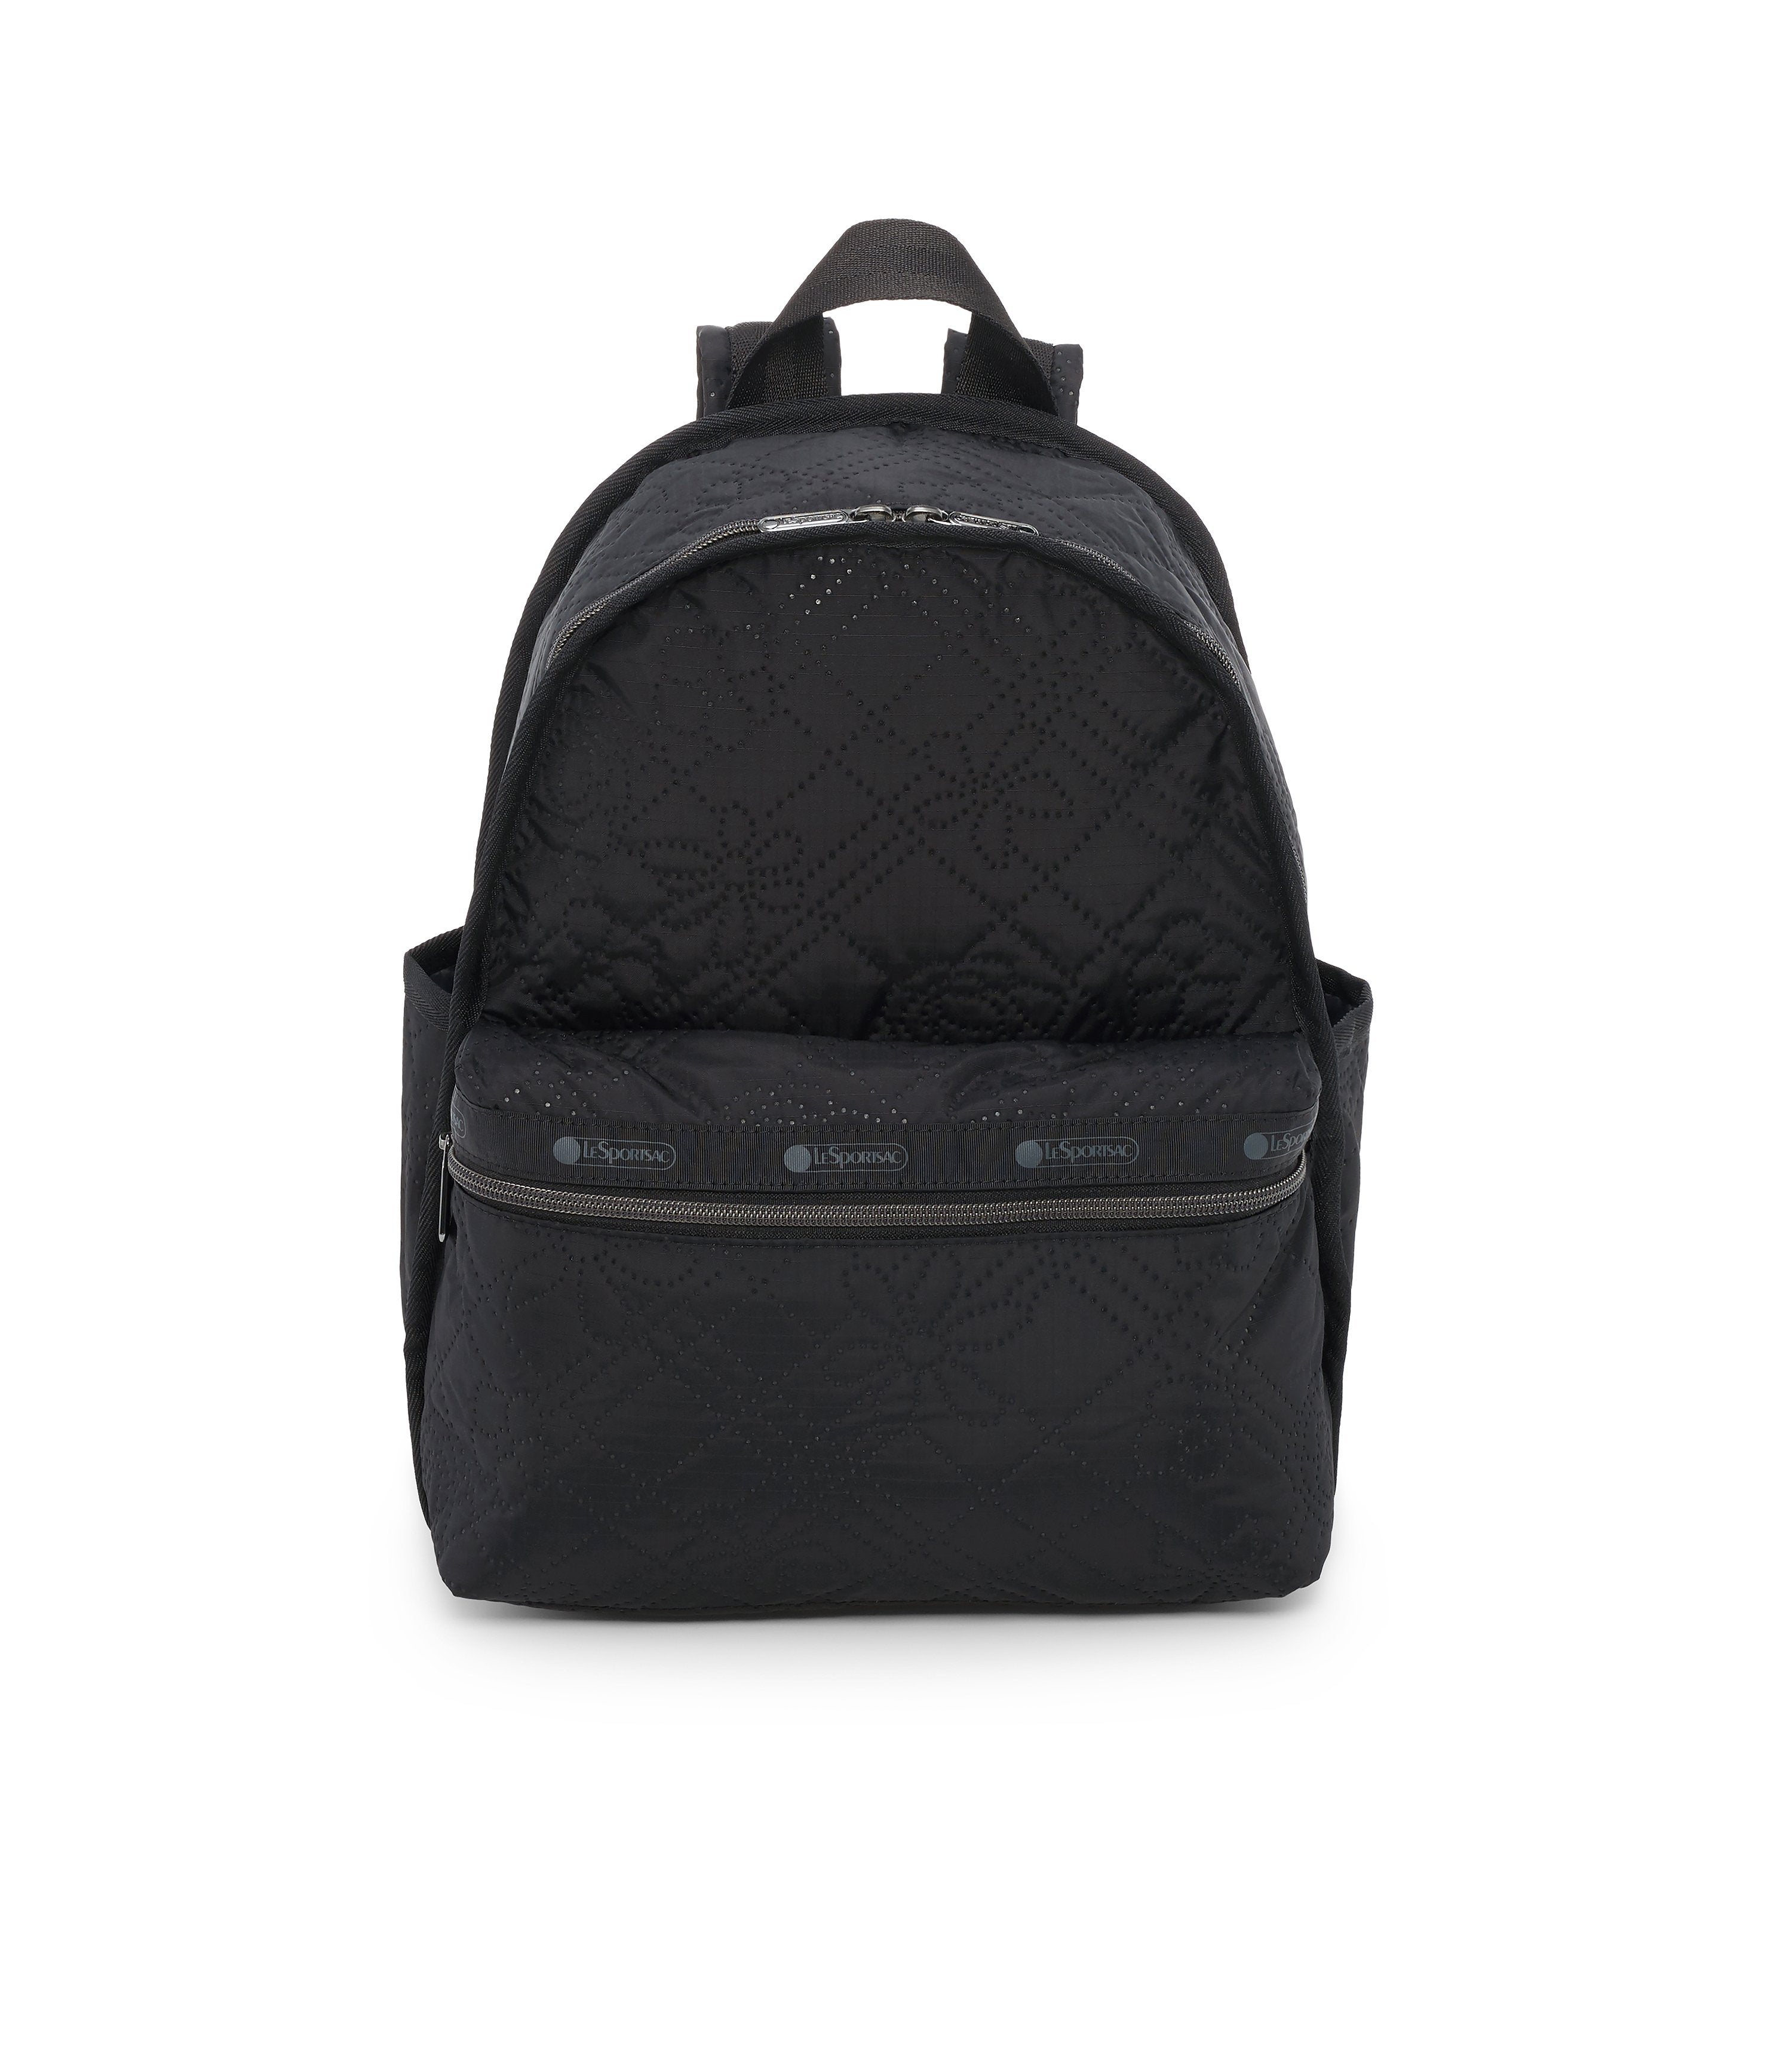 Basic Backpack, Water Resistant Backpacks, LeSportsac, Fleur De Check Black Debossed